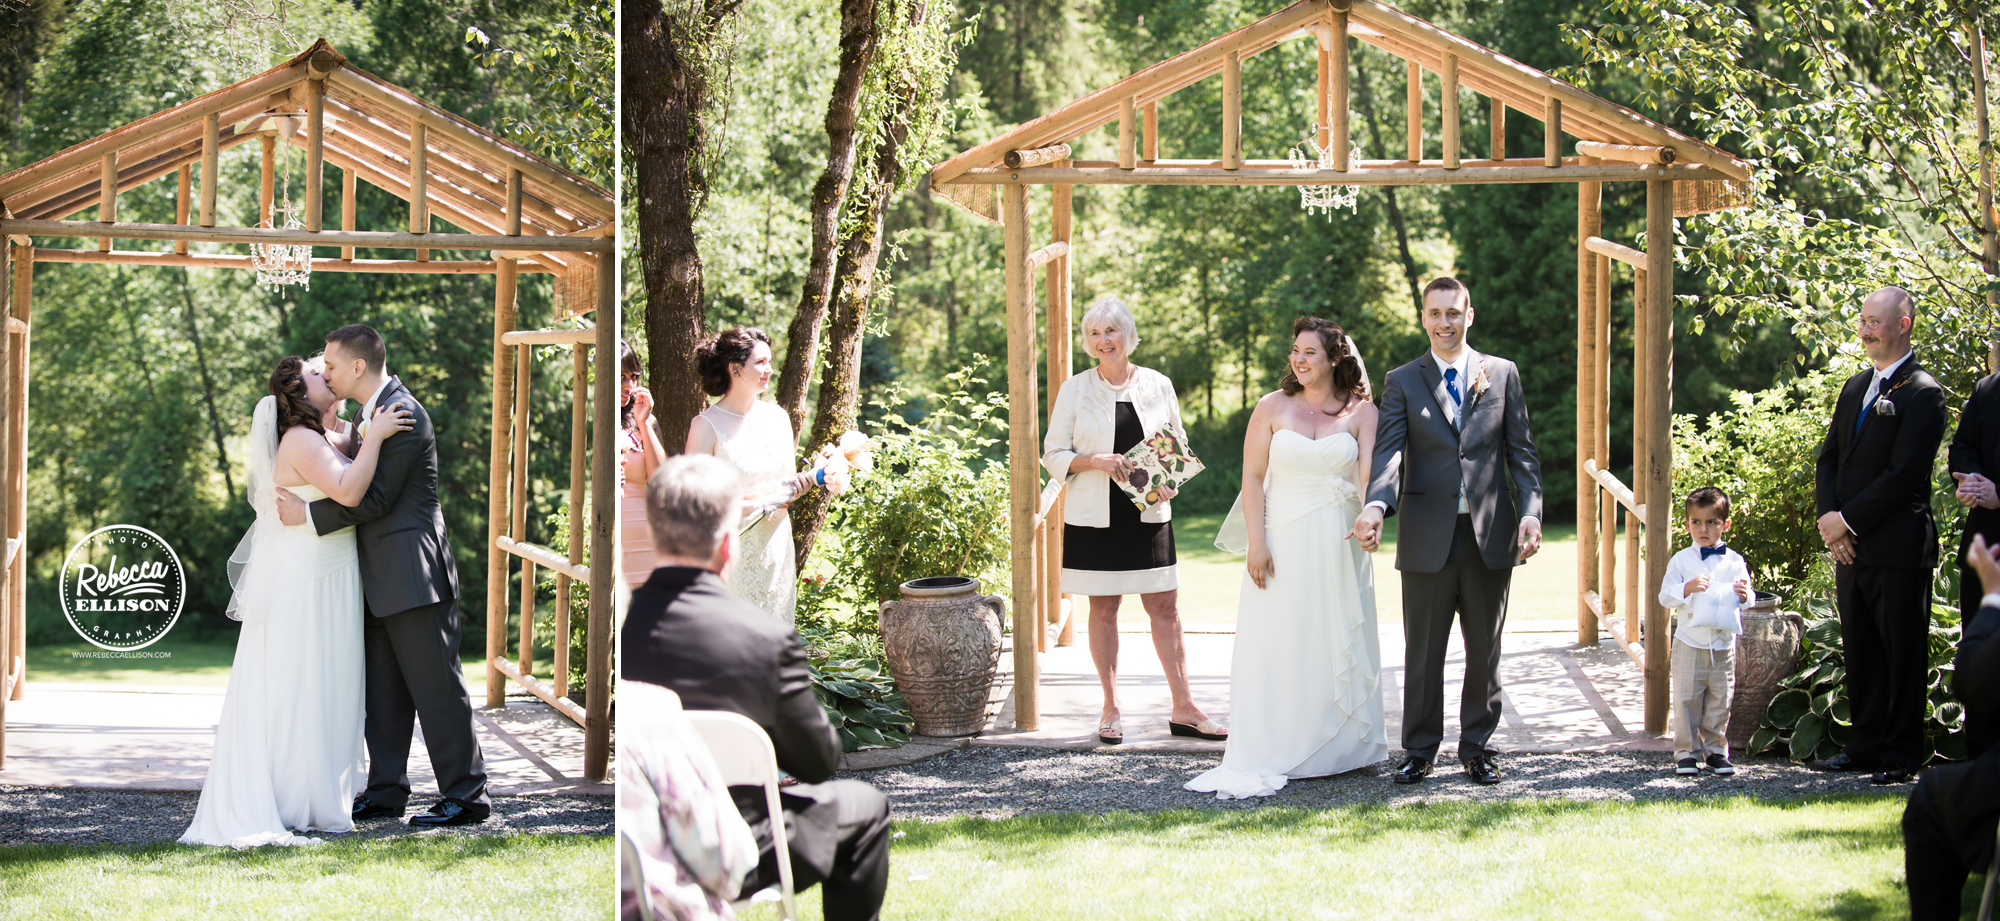 Wedding Ceremony at snohomish wedding venue Jardin Del Sol featuring a wooden arbor and white strapless wedding dress photographed by Rebecca Ellison Photography